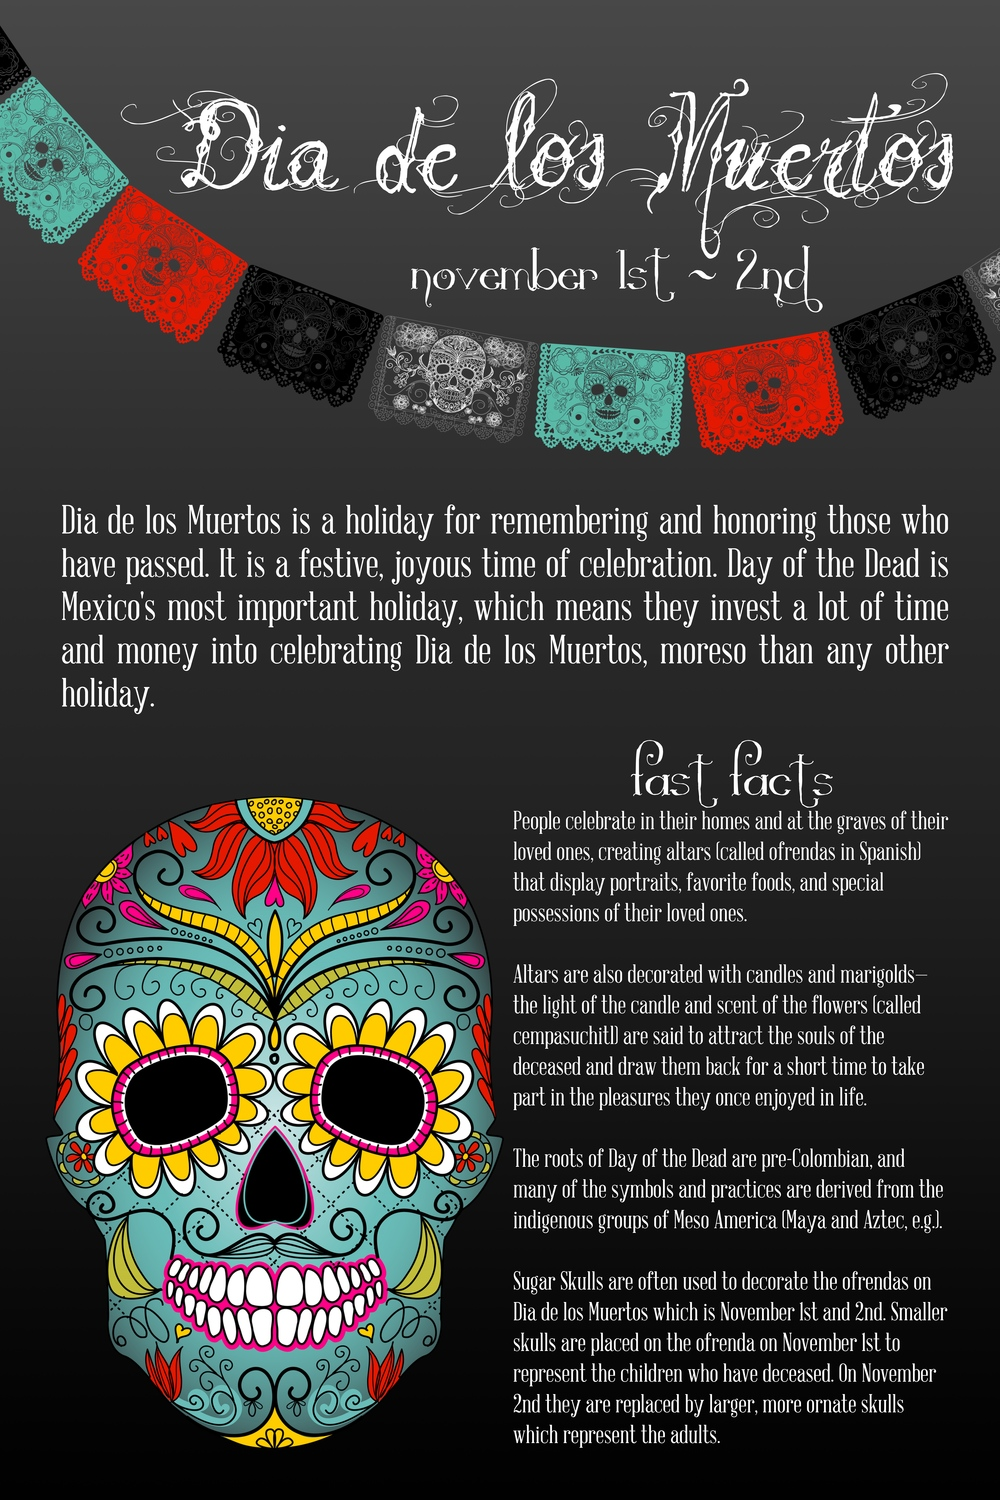 Dia de los Muertos is a holiday for remembering and honoring those who have passed. It is a festive, joyous time of celebration. Day of the Dead is Mexico's most important holiday, which means they invest a lot of time and money into celebrating Dia de los Muertos, more so than any other holiday.